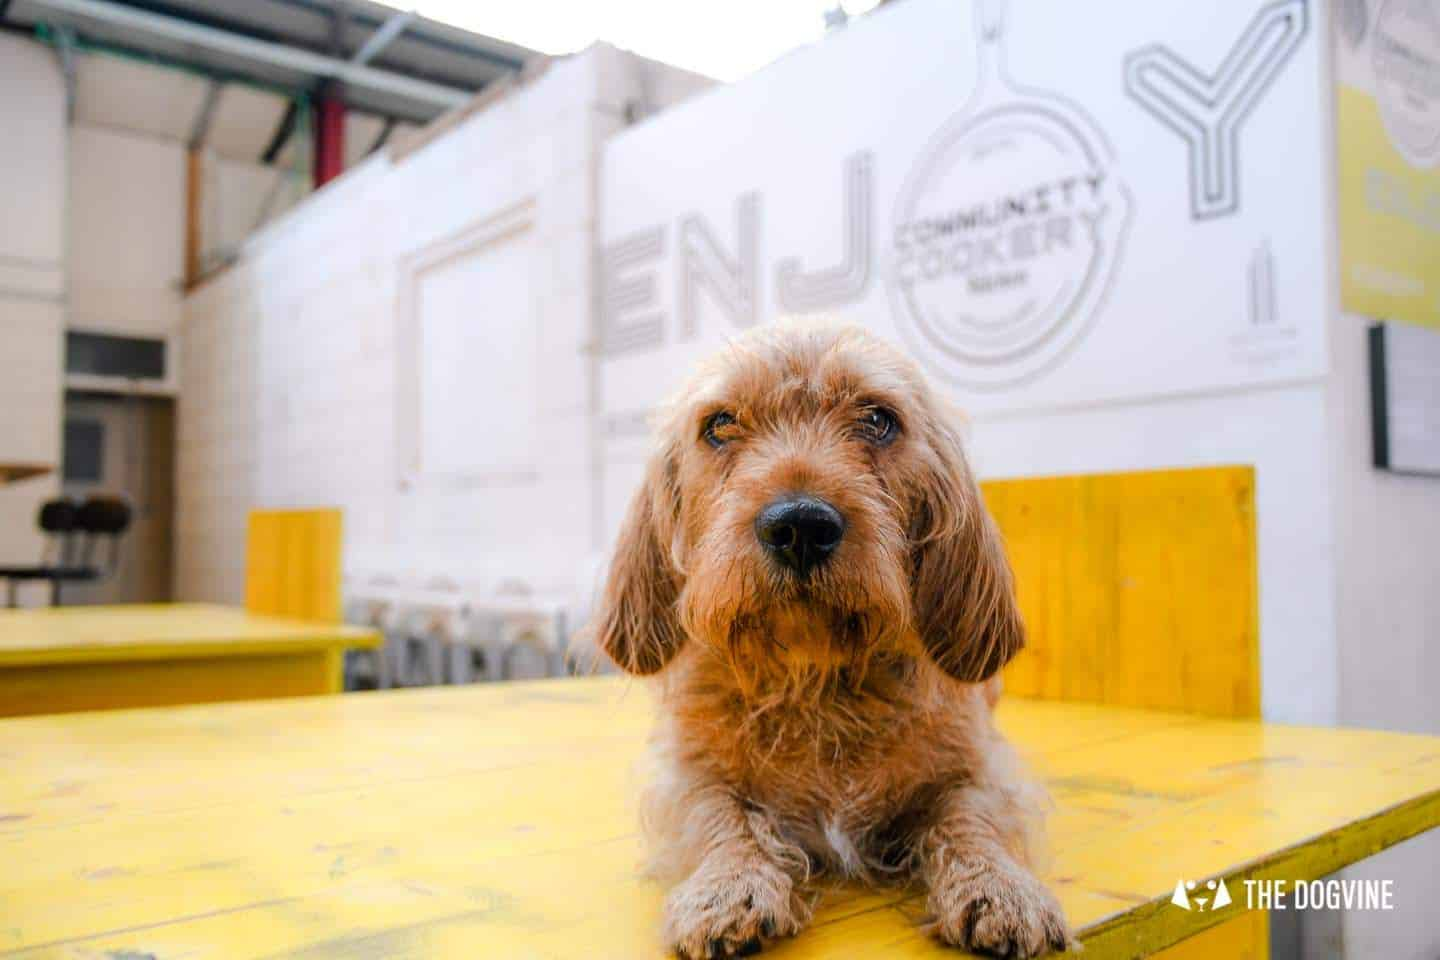 My Dog Friendly London By Amber - Dog Friendly Elephant & Castle - Mercato Metropolitano 18